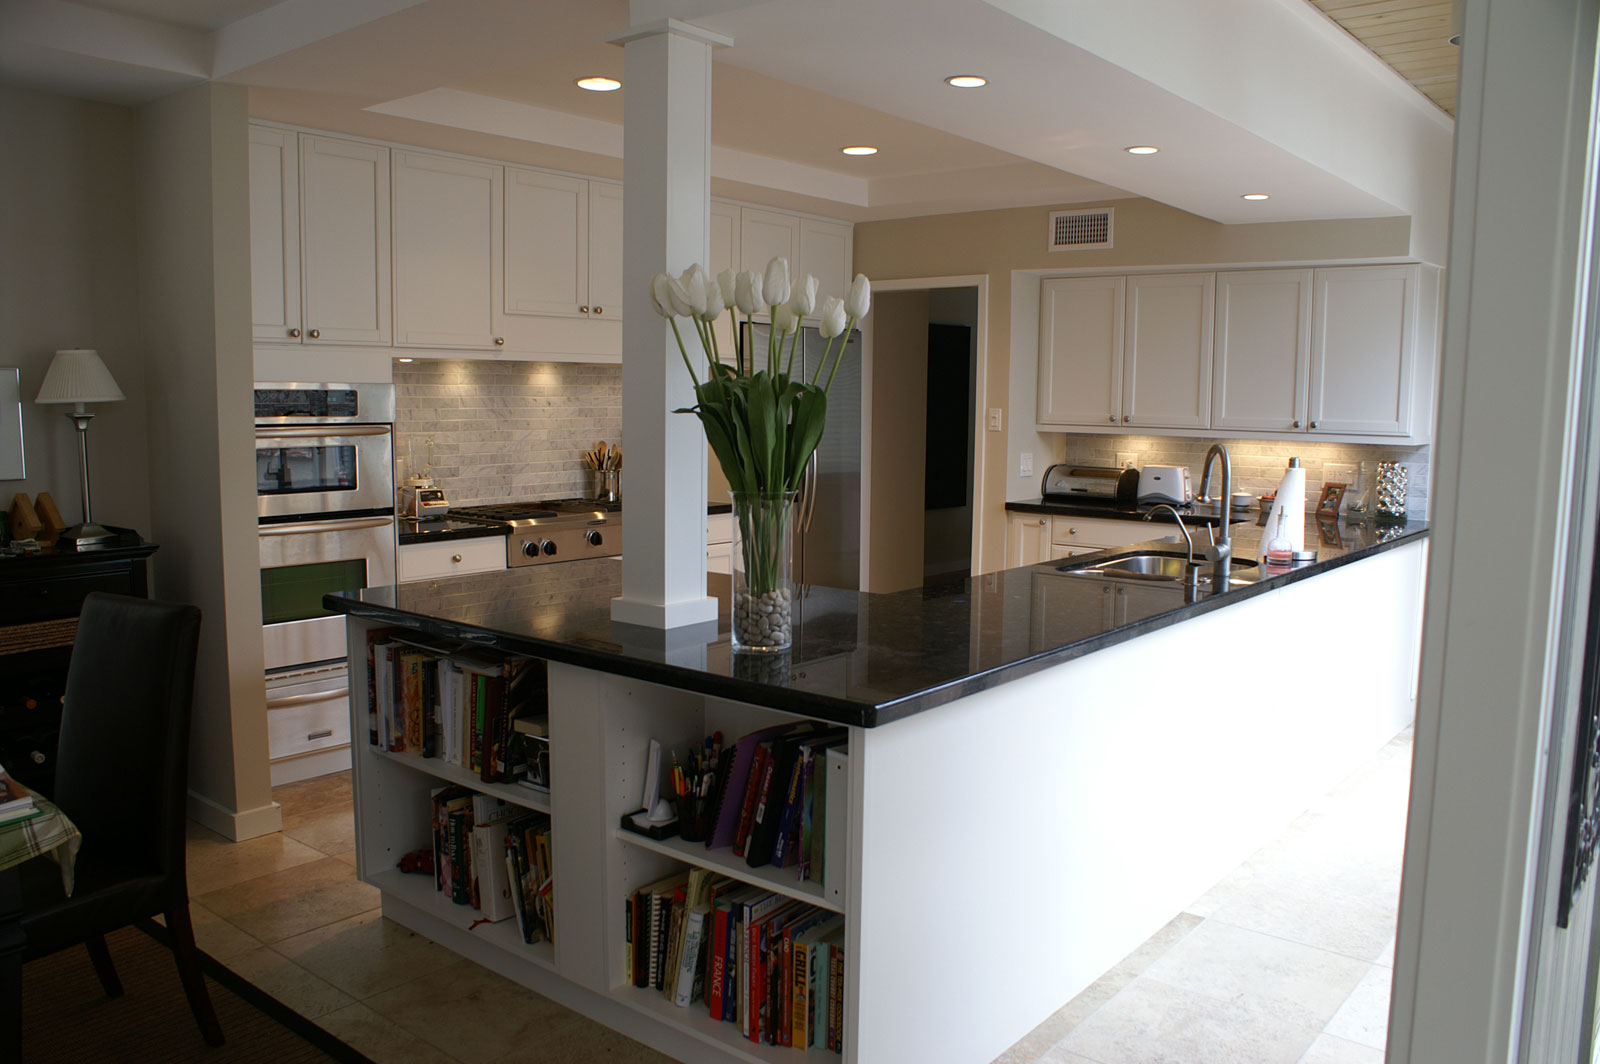 Renovation timelines a new kitchen by new year